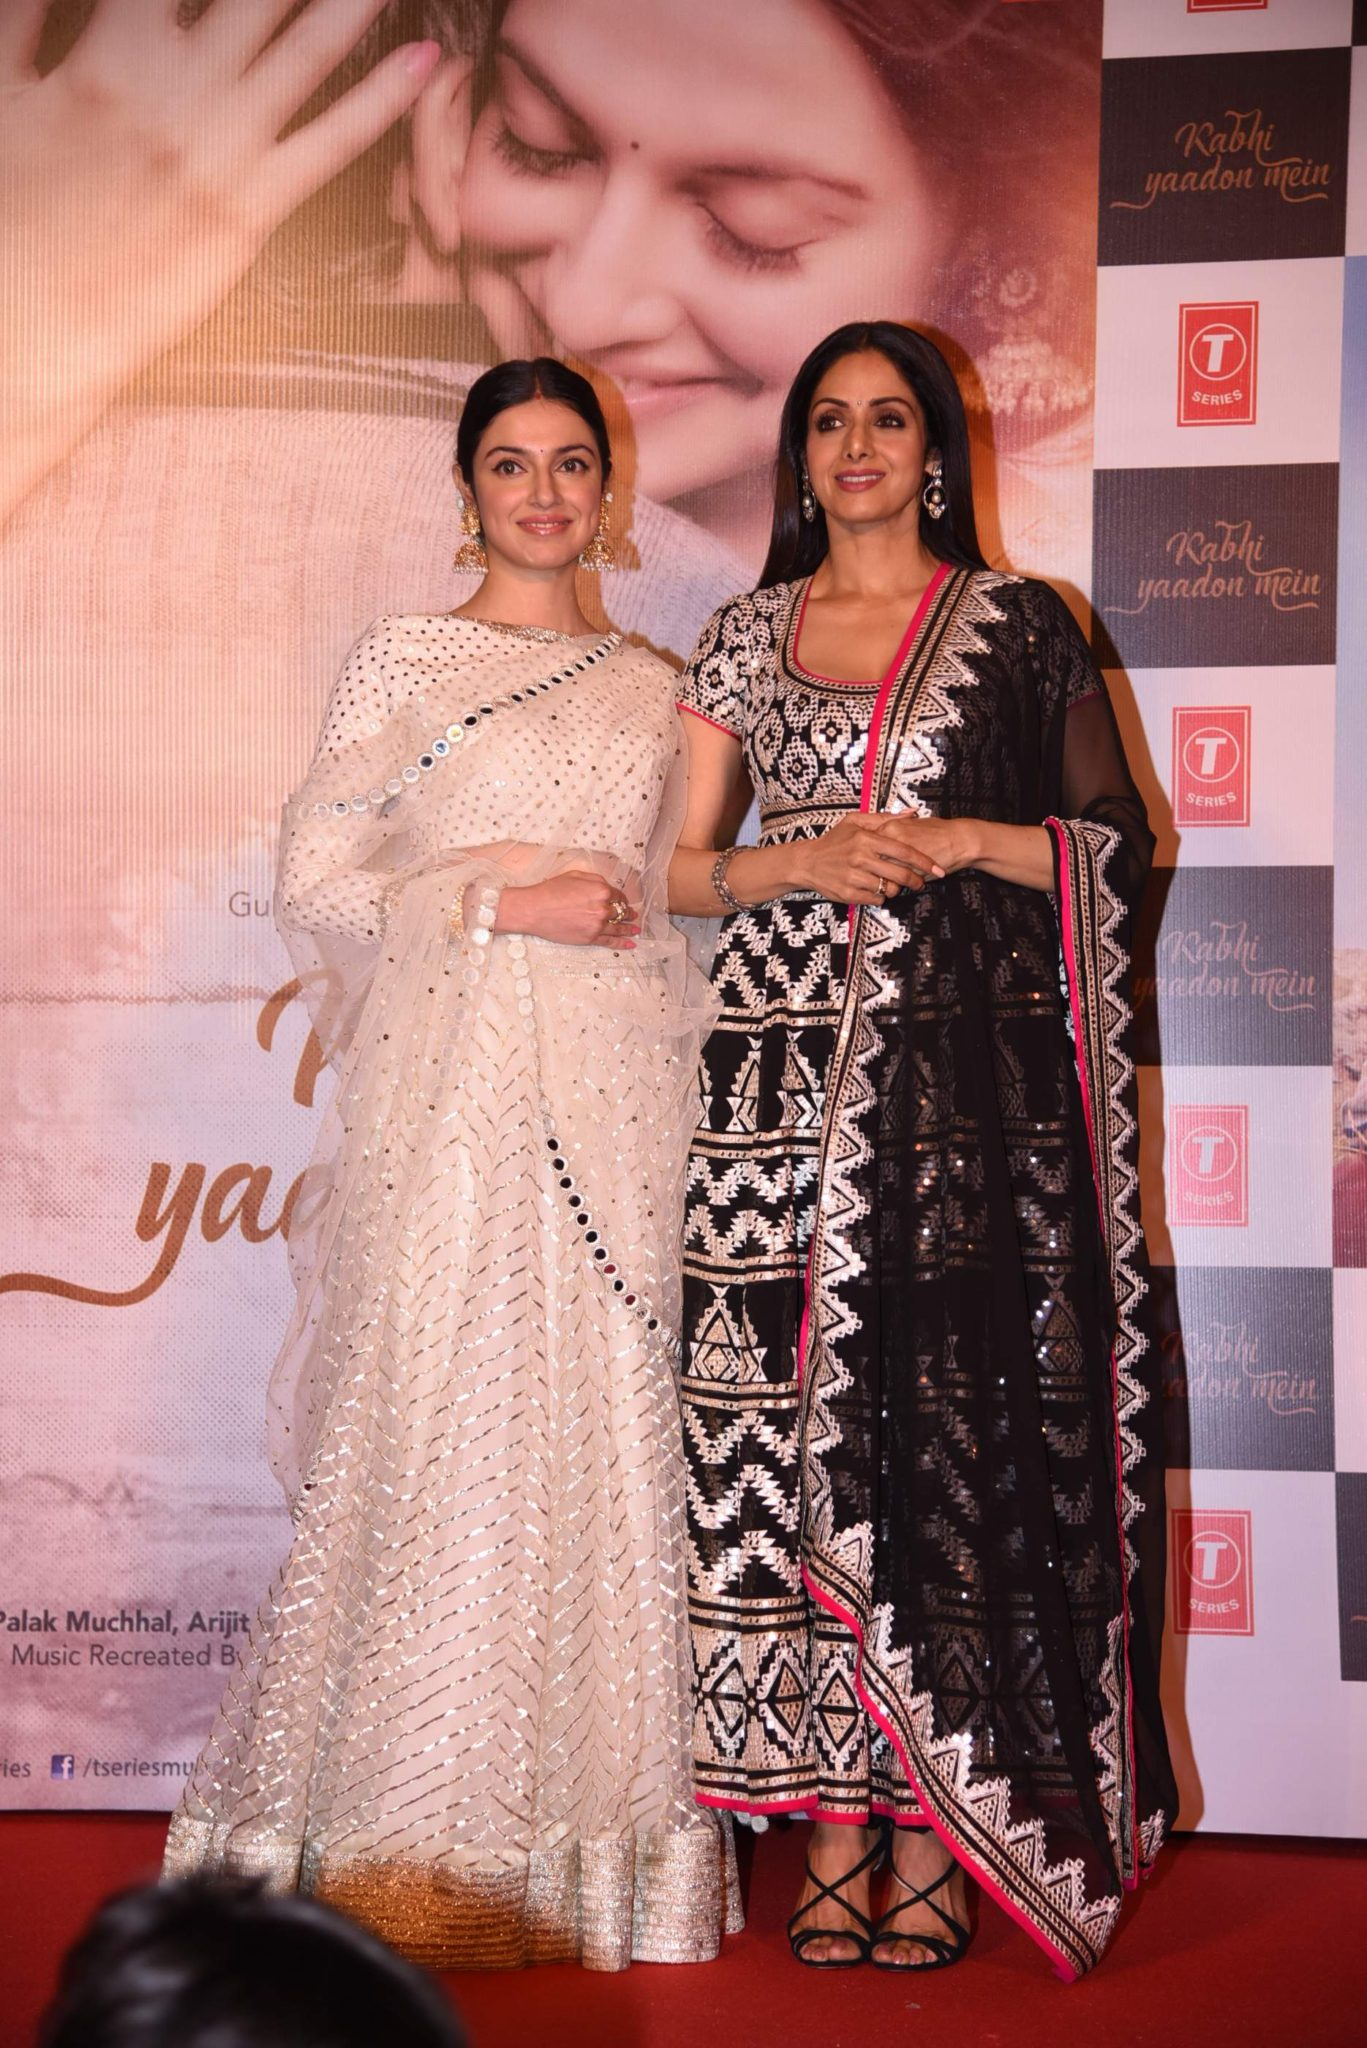 sridevi Photo Stills Of Beautiful Sridevi From 'Kabhi Yaadon Mein' Event Sridevi TSeries 91